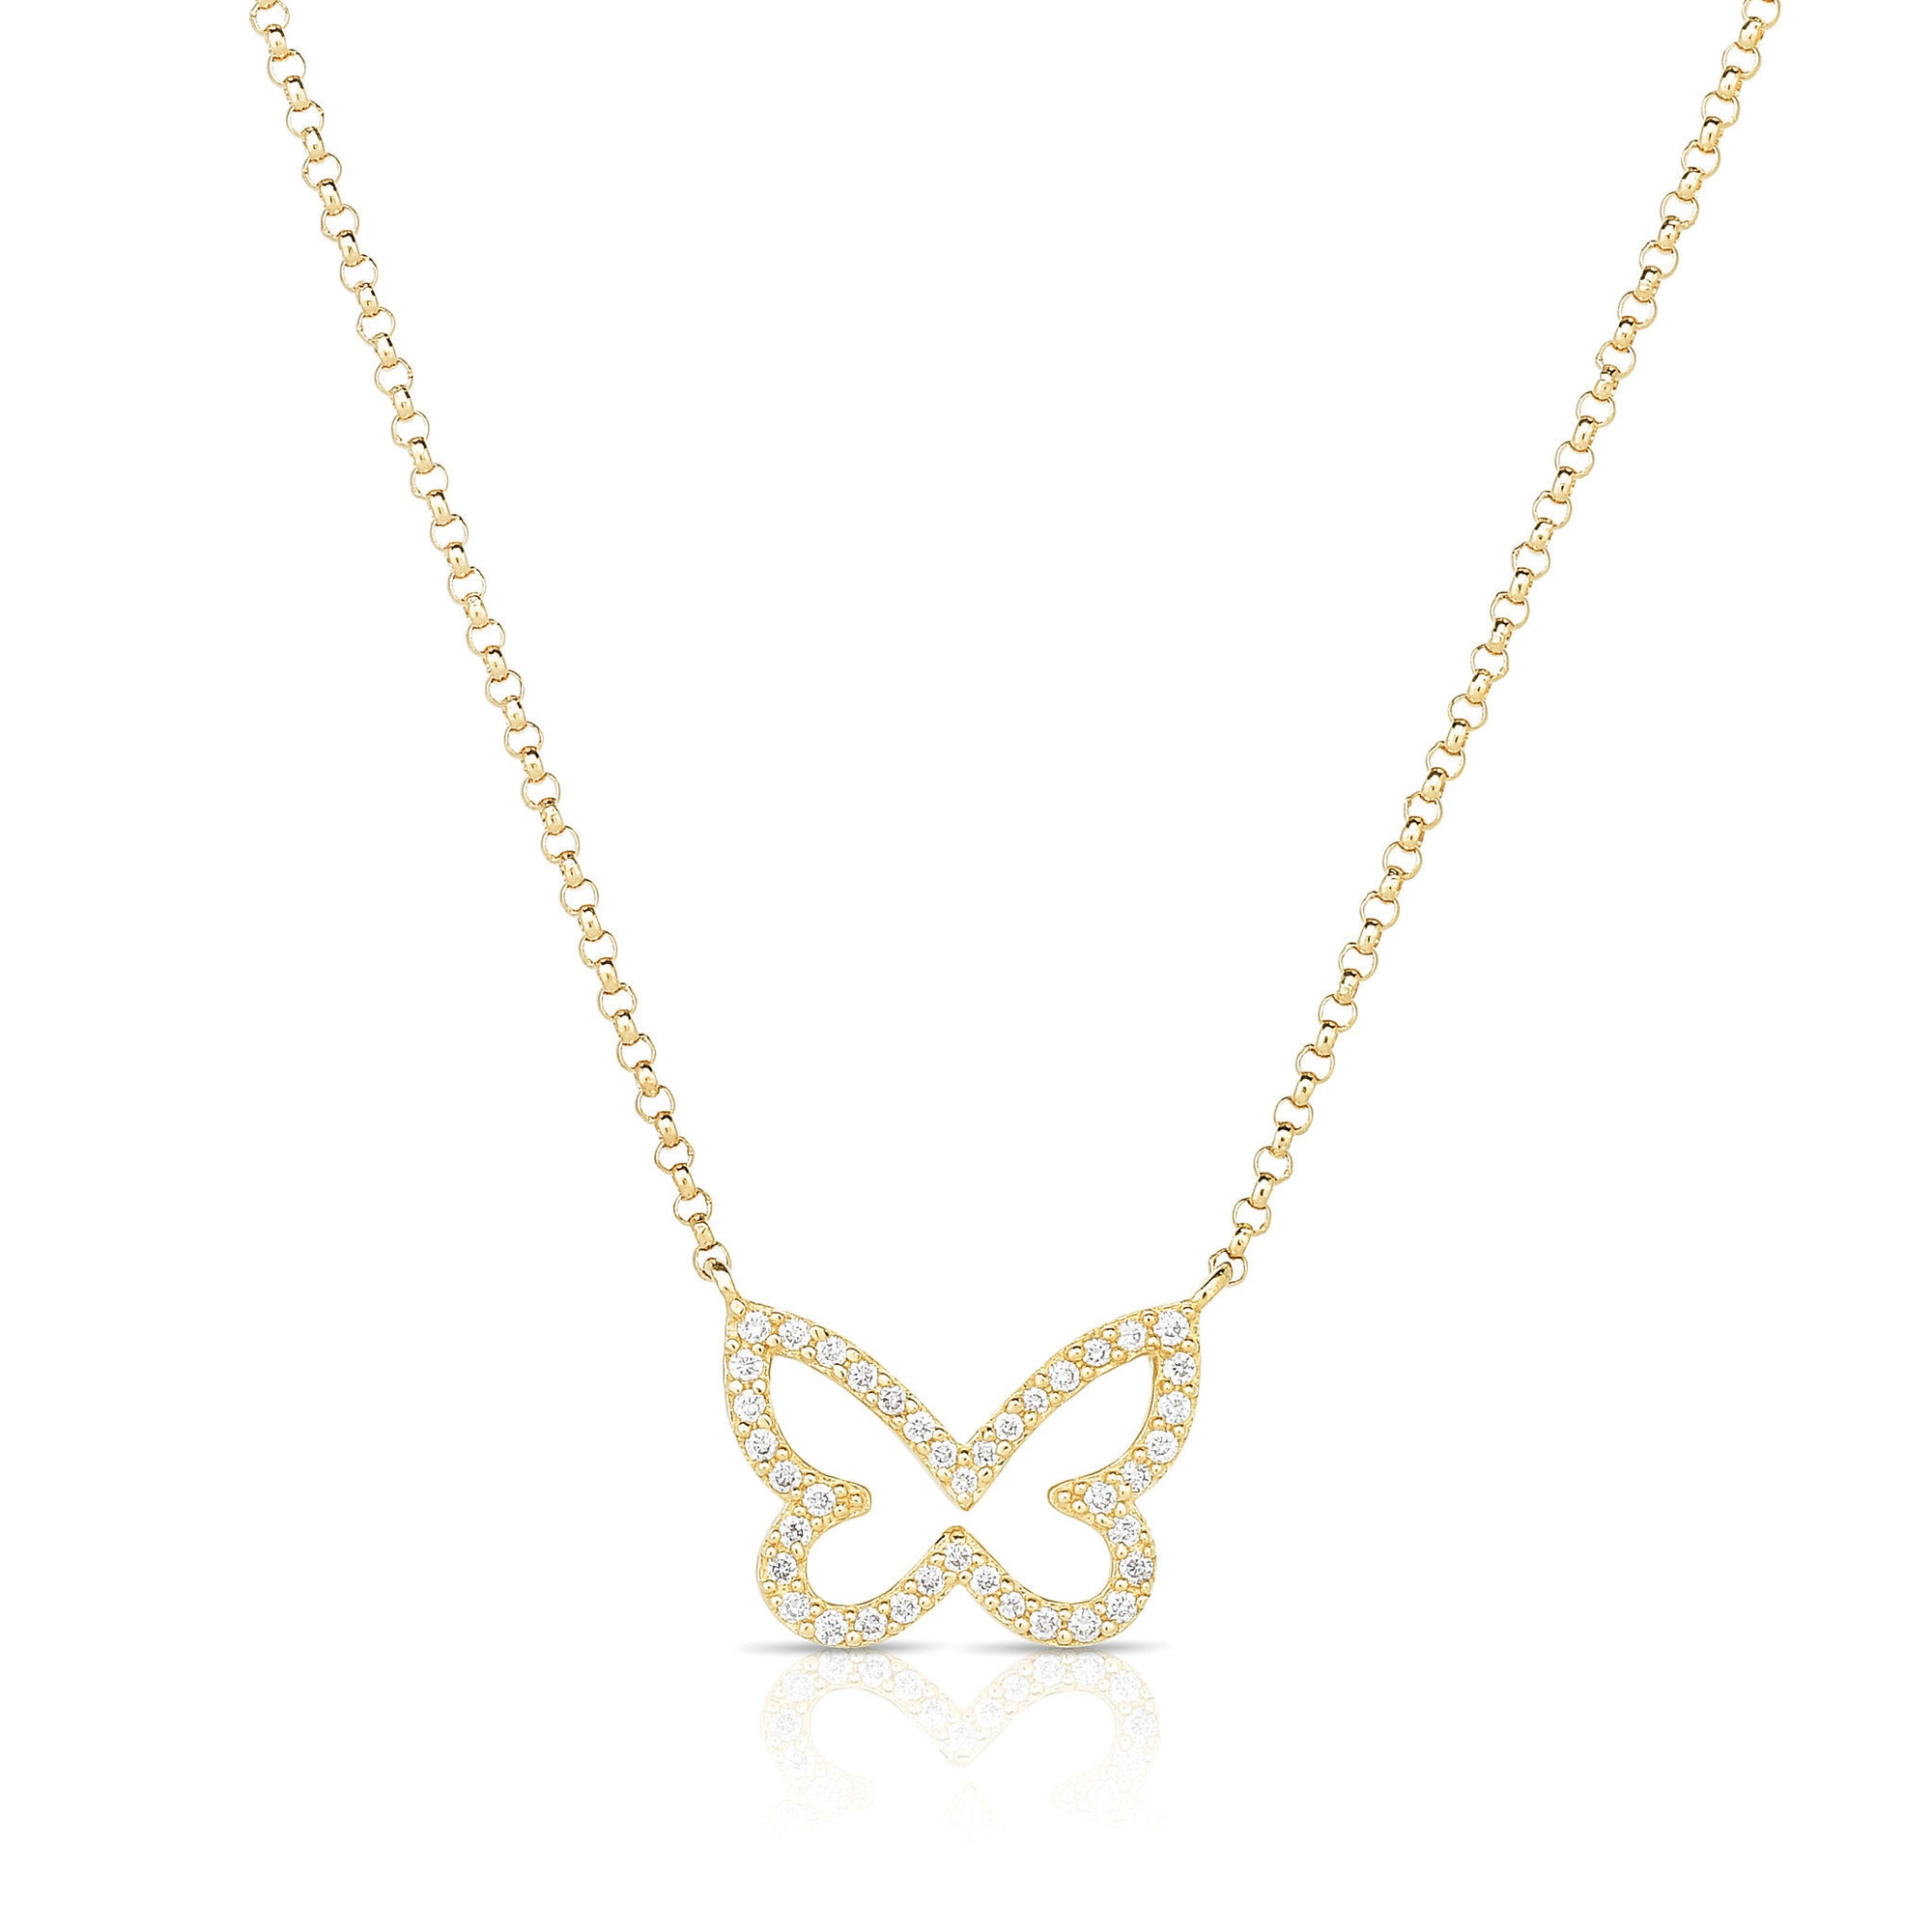 Small Diamond Open Butterfly Chain Necklace